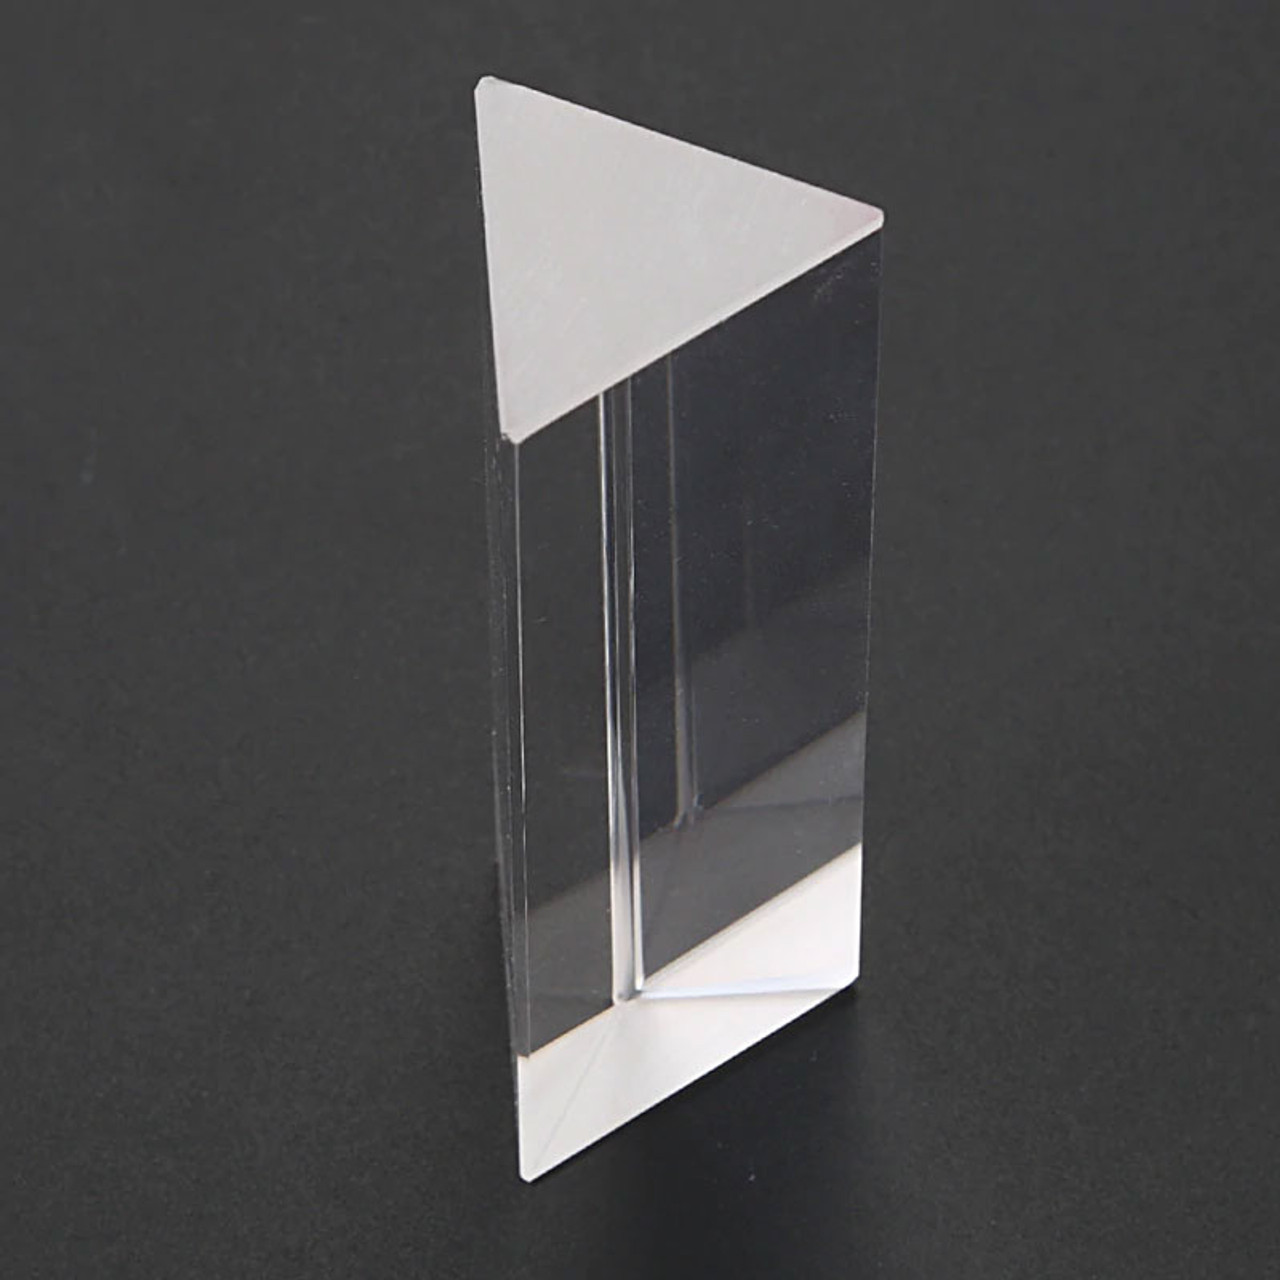 Glass Prism, Equilateral (Length 50 mm, Face 25mm)